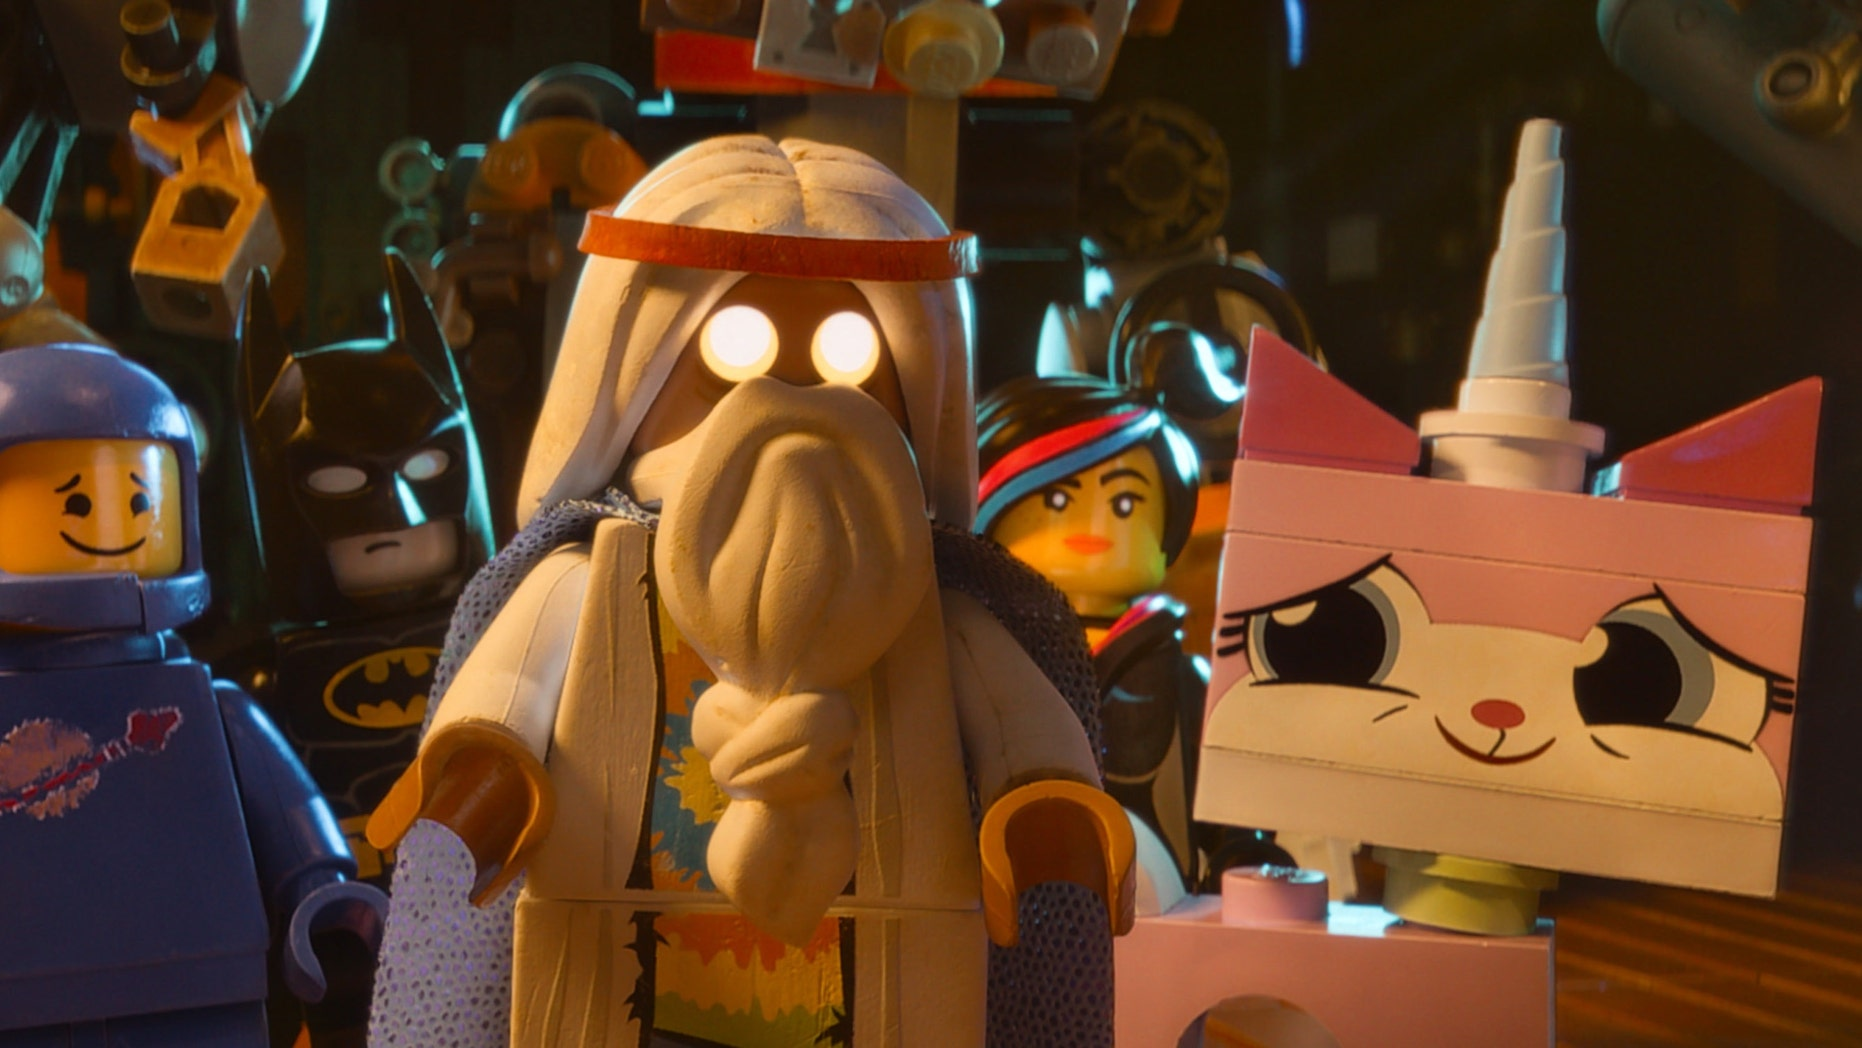 """Benny, voiced by Charlie Day, Batman, voiced by Will Arnett, Vitruvius, voiced by Morgan Freeman, Wyldstyle, voiced by Elizabeth Banks and Unikitty, voiced by Alison Brie, in a scene from """"The Lego Movie."""""""